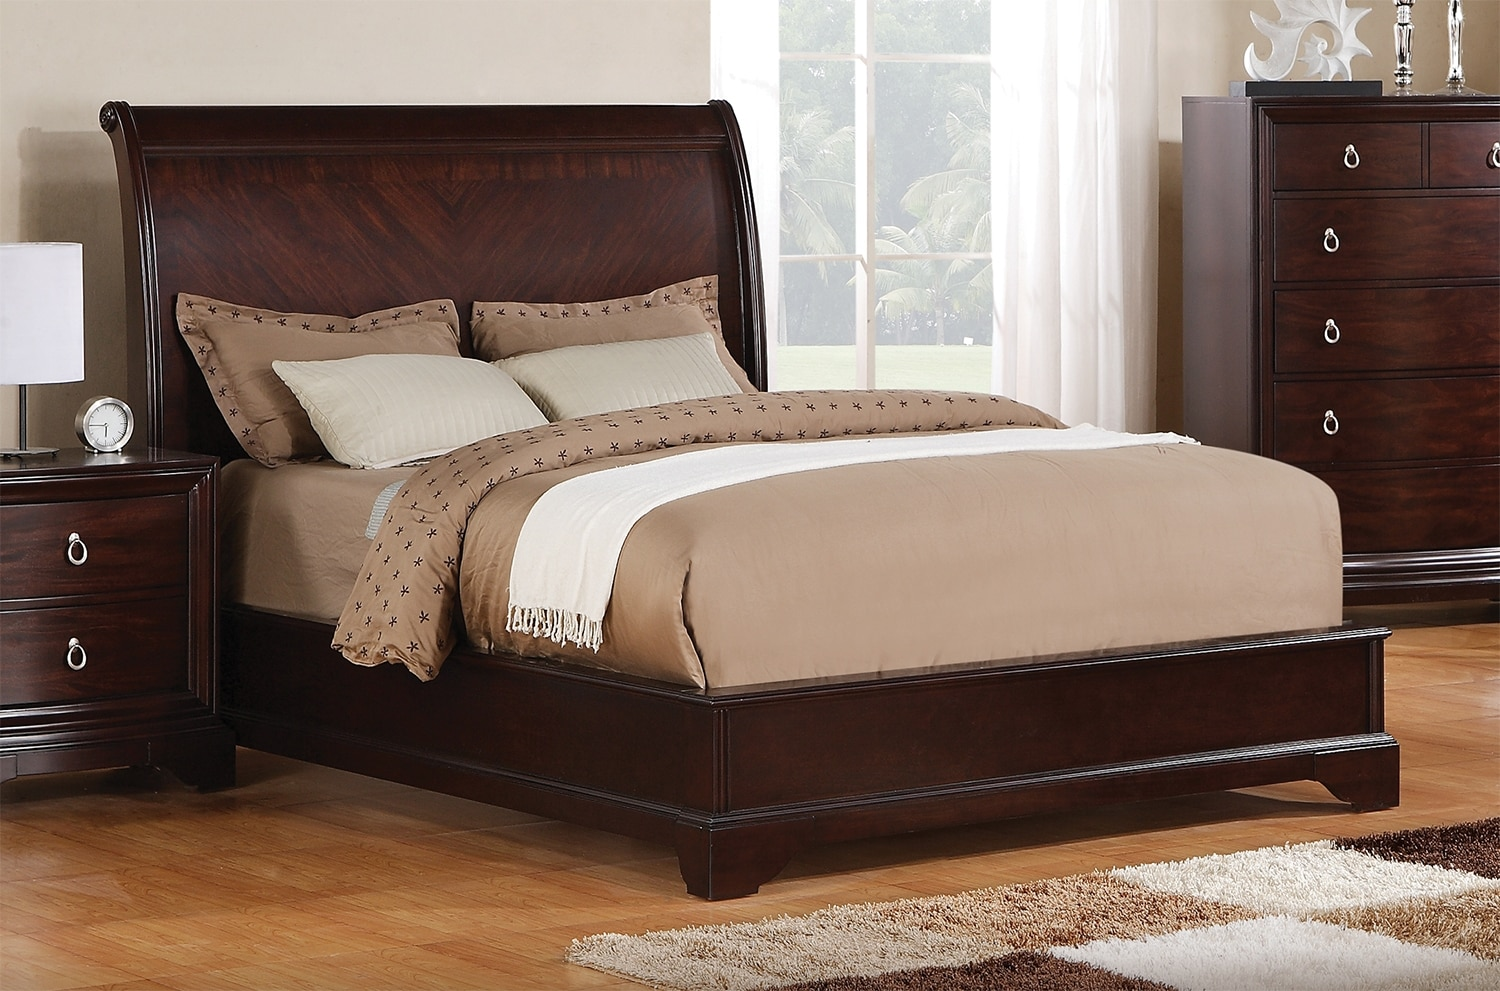 Noah Queen Bed - Dark Cherry